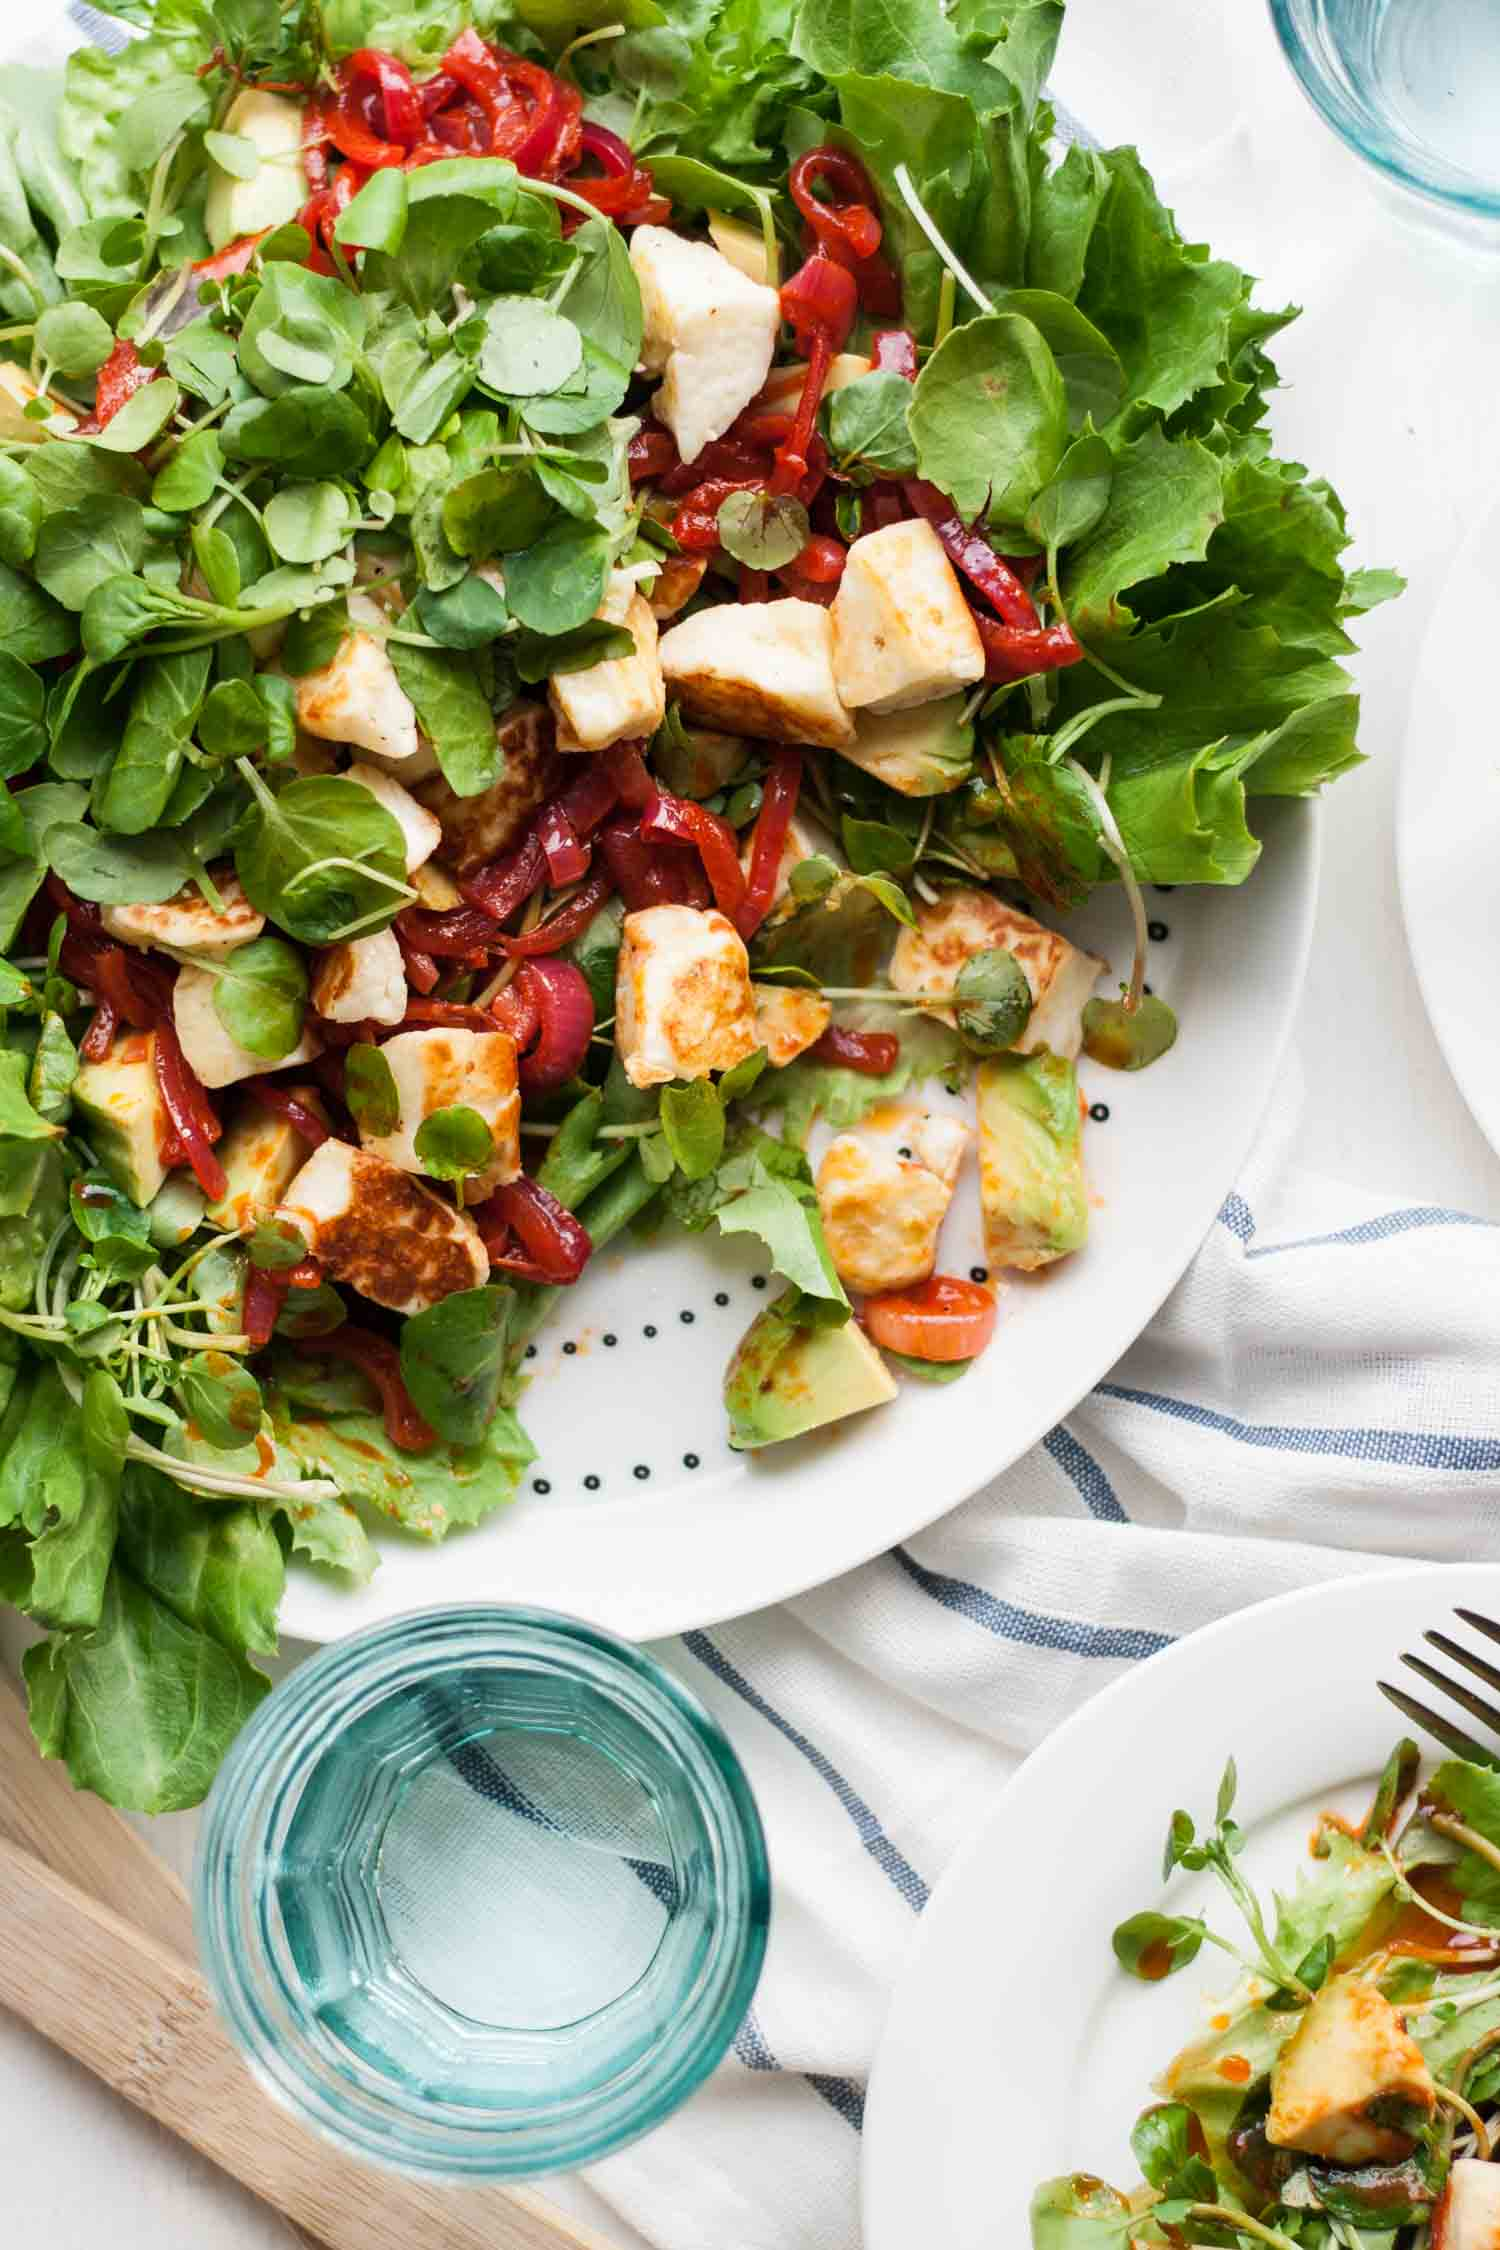 Smoky Halloumi Avocado Salad - a simple salad recipe, full of flavour and textures, a perfect light evening meal for spring | eatloveeats.com